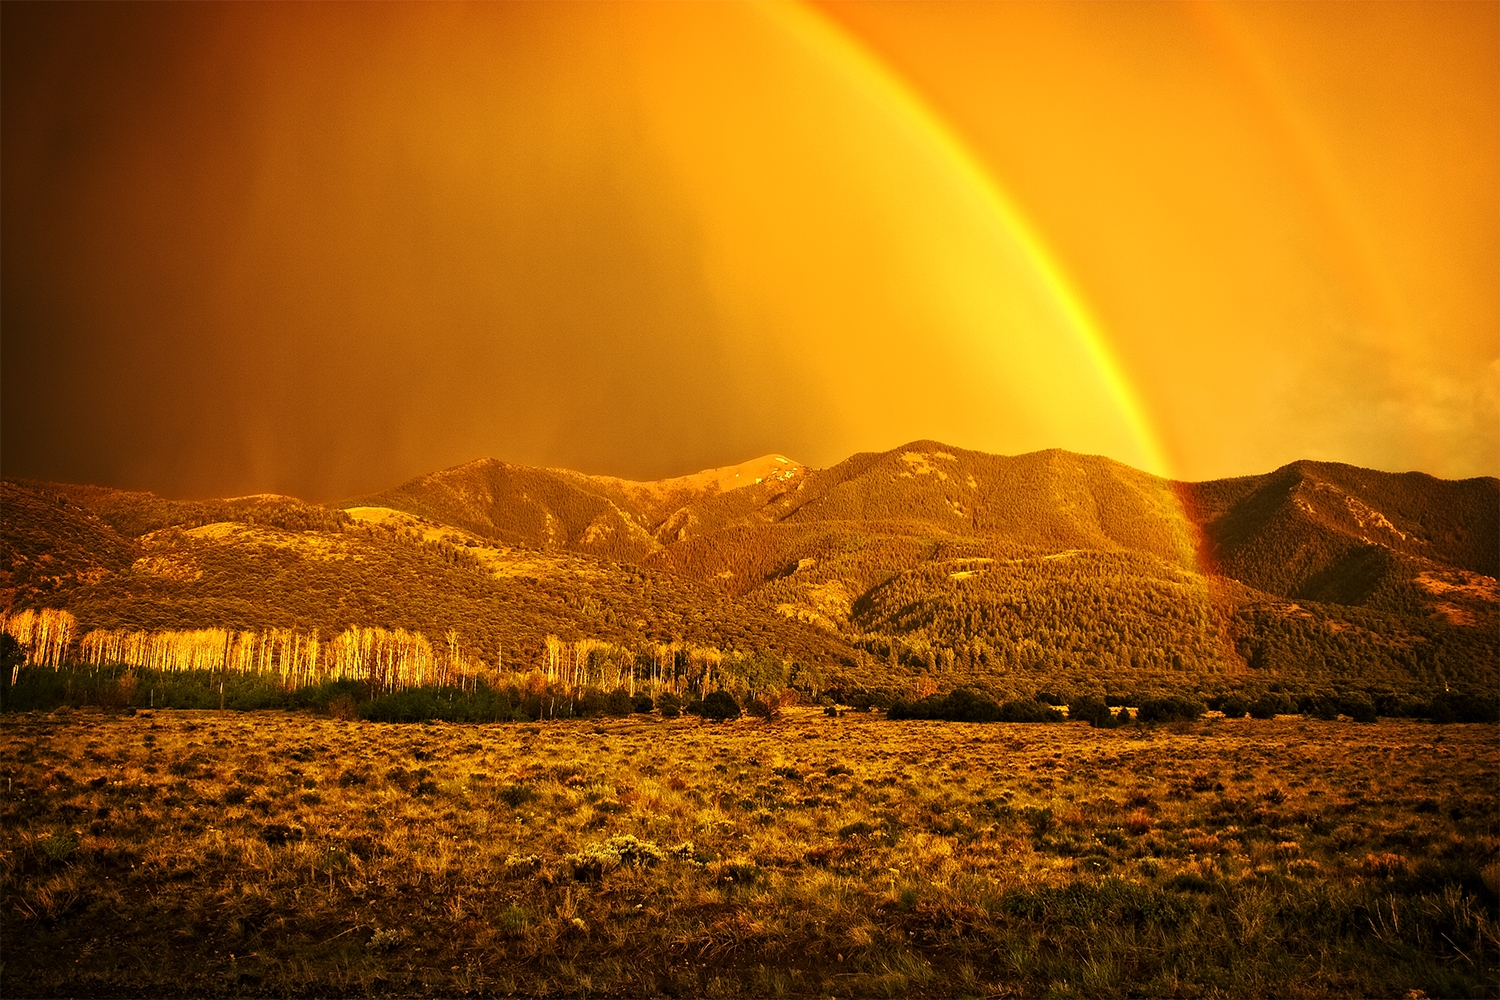 Sunset rainbow outside of Great Sand Dunes National Park, near Alamosa, Colorado. Processed using On1 Effects.